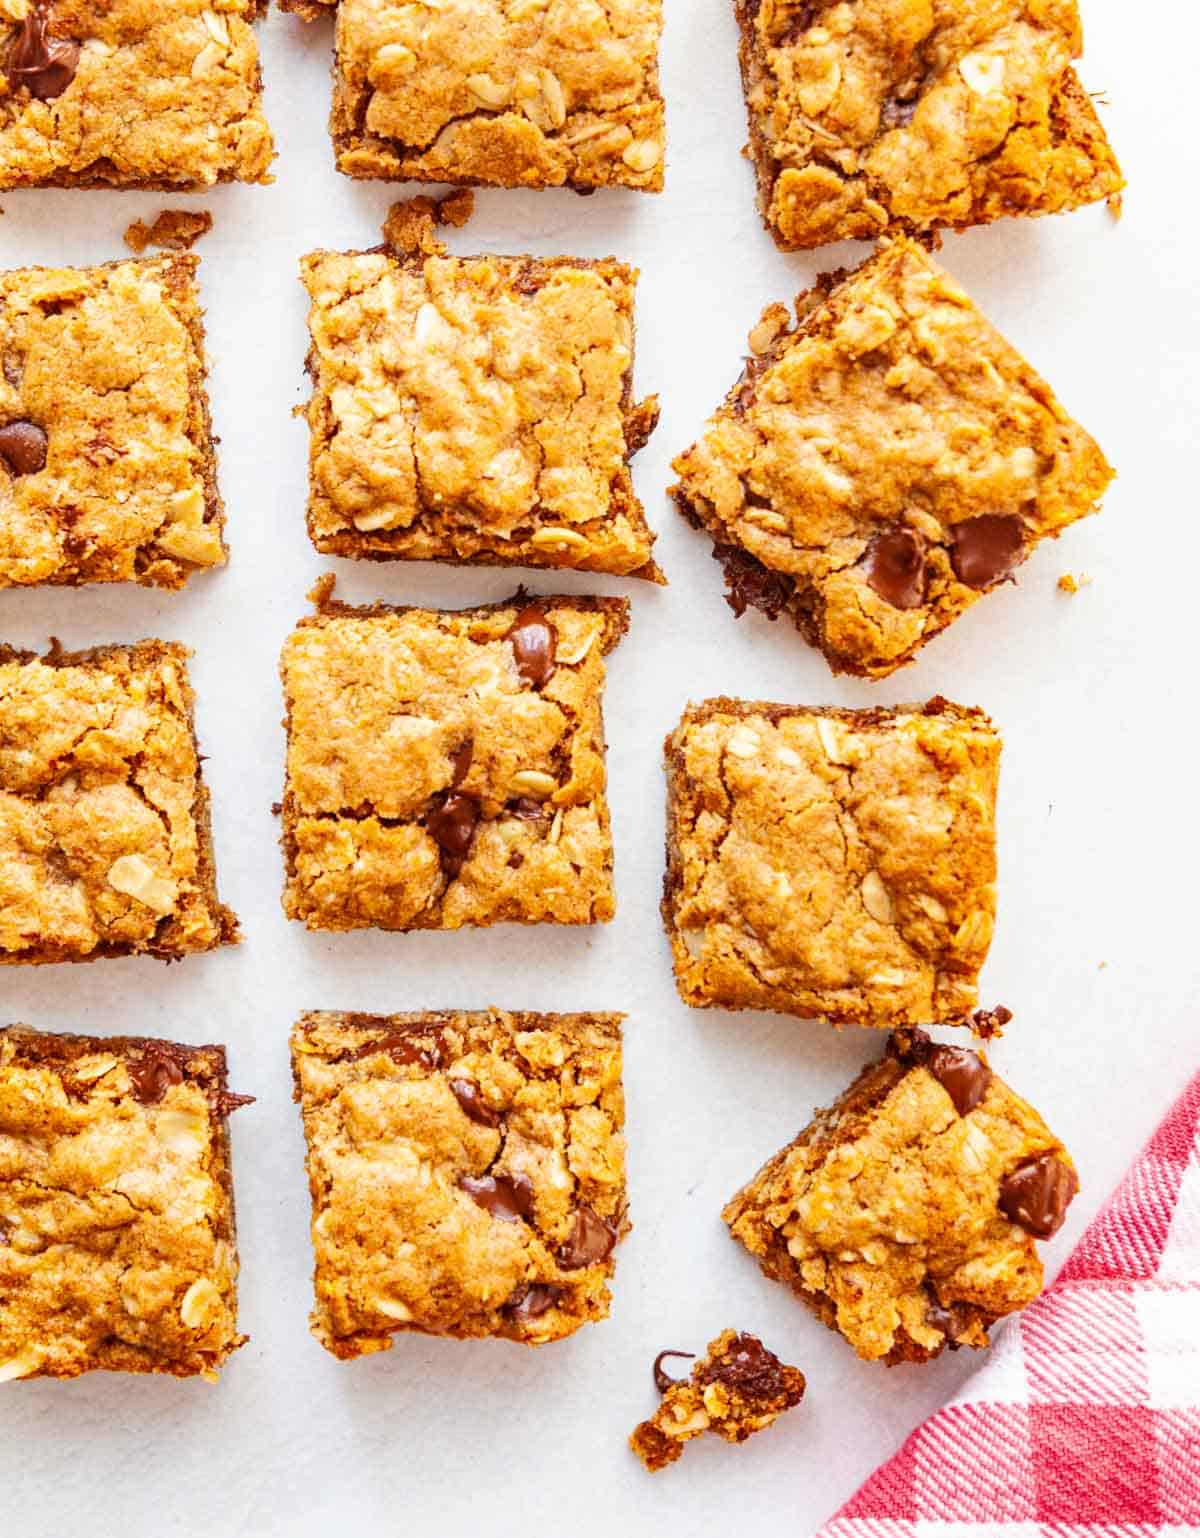 squares of oatmeal bars on a gray background